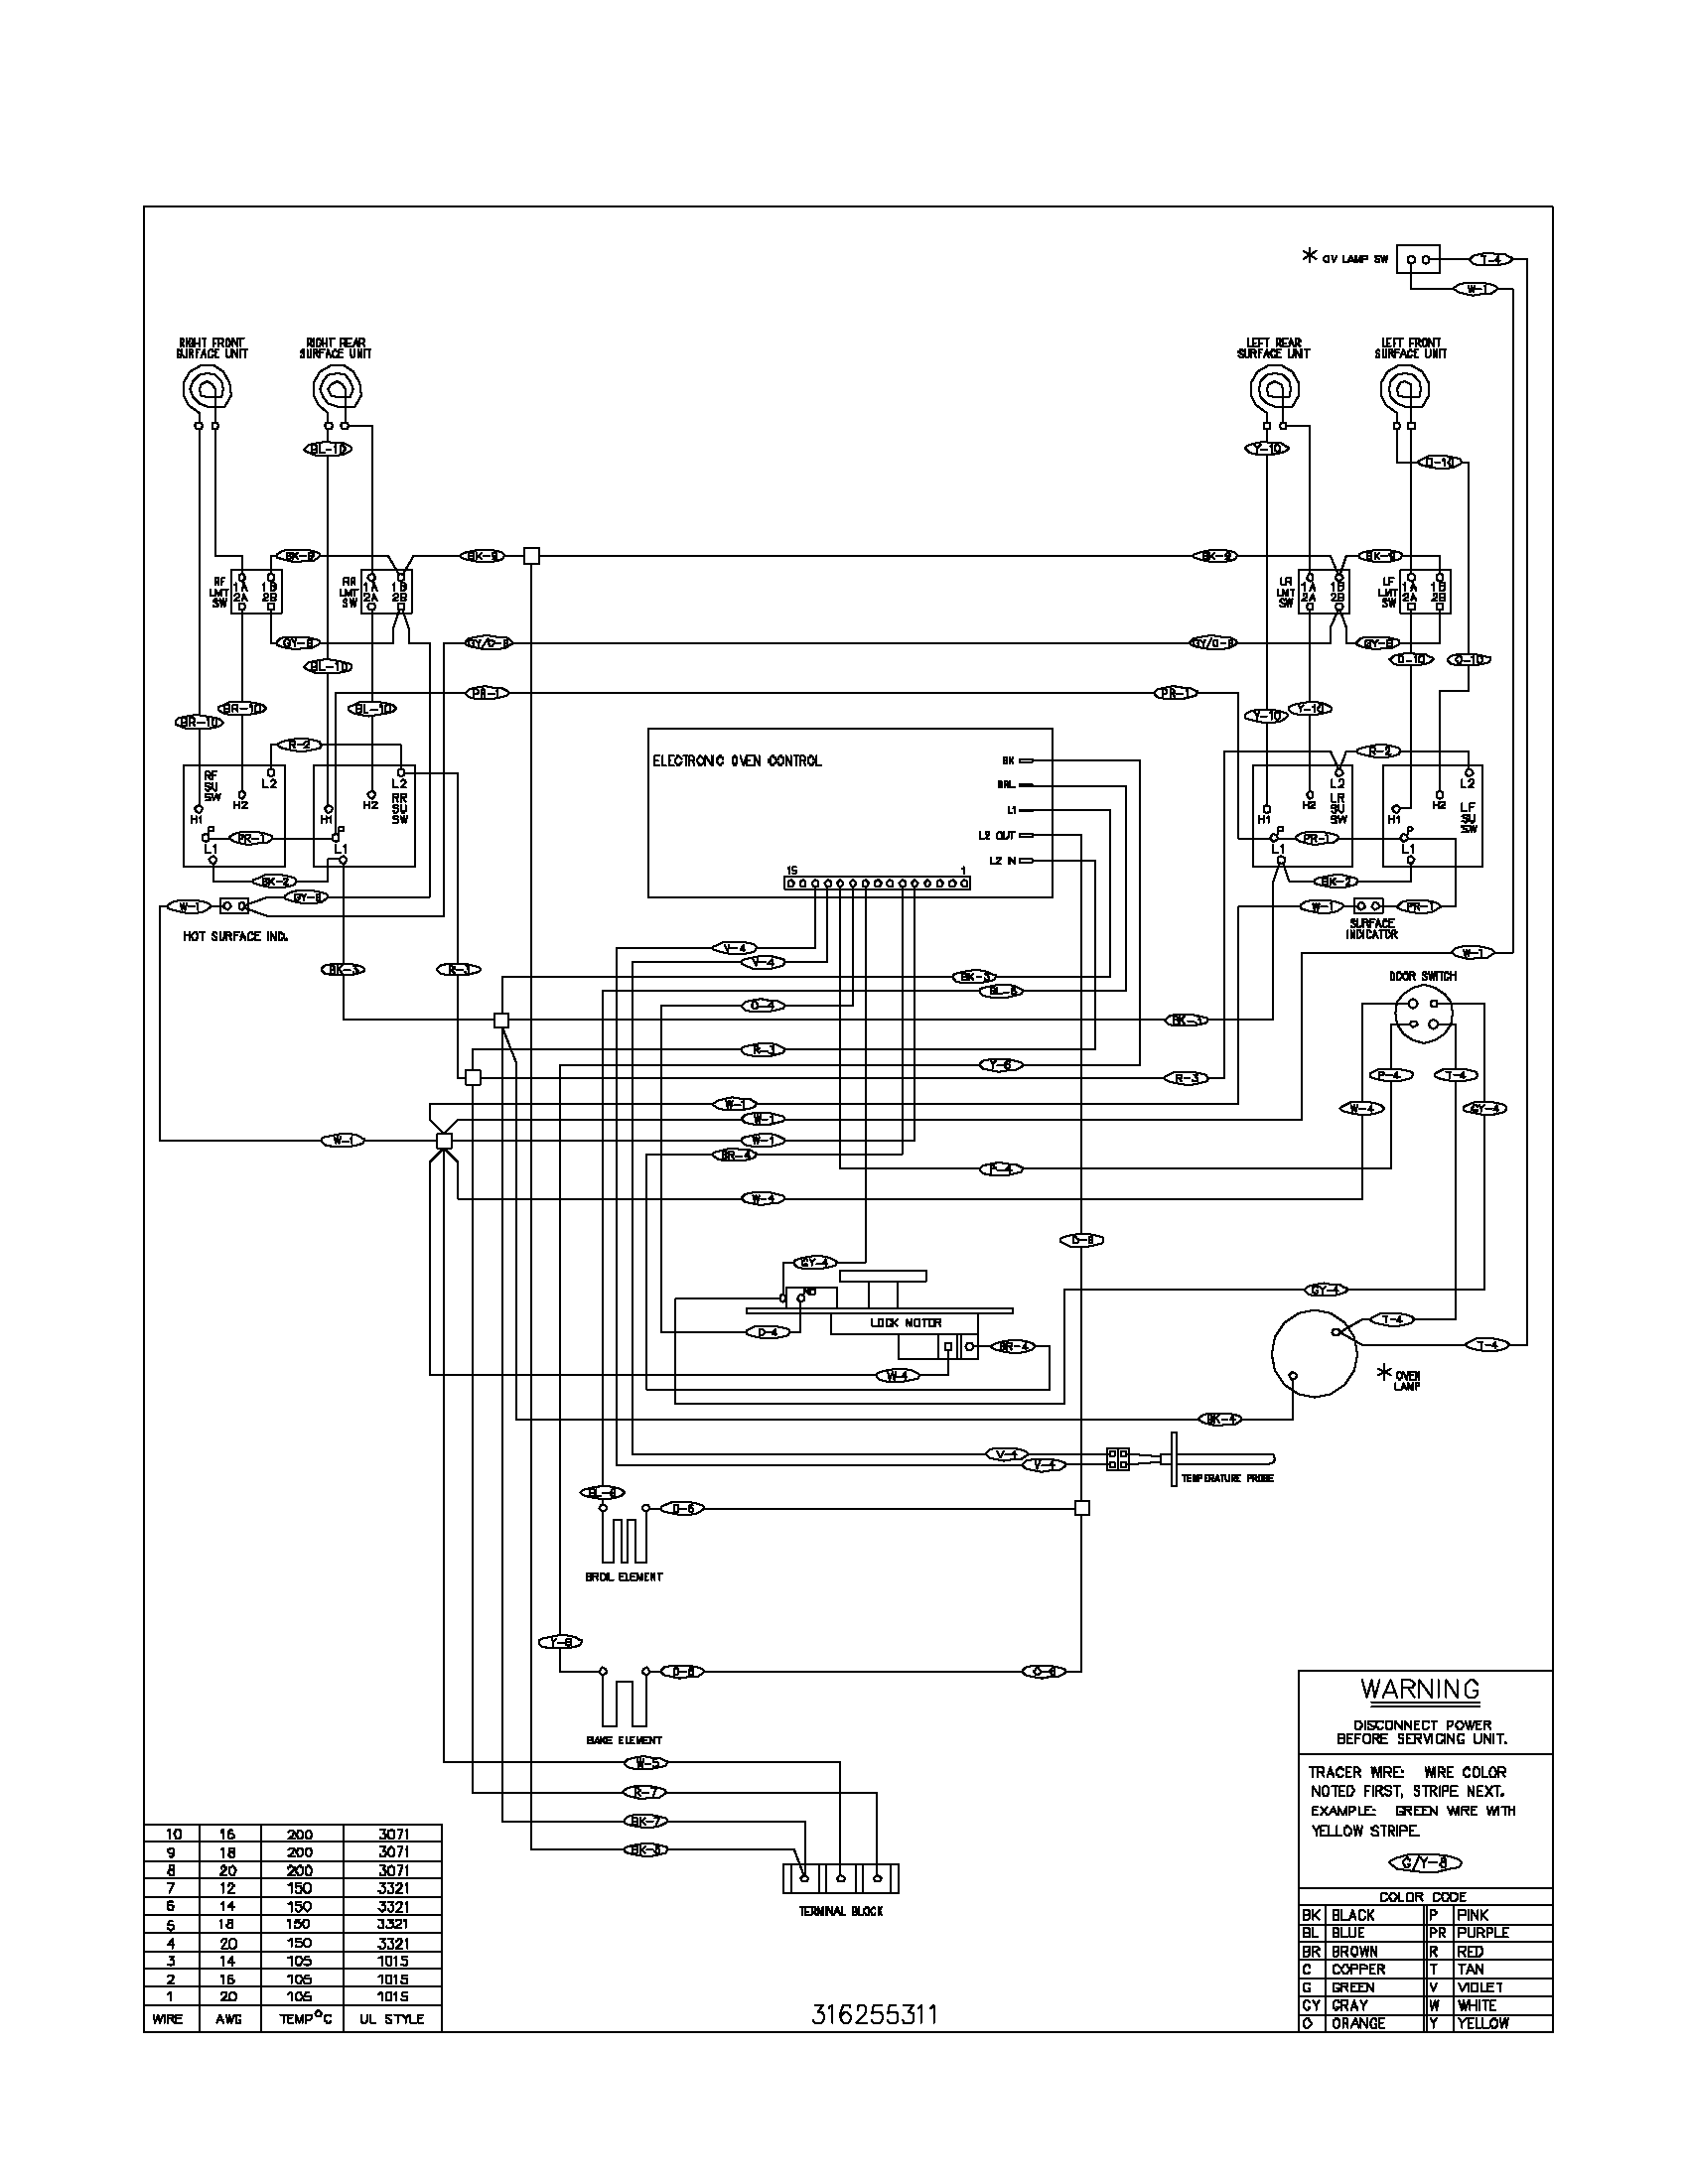 Whirlpool Range Wiring Diagram - 98 Lexus Gs300 Fuse Box Diagram for Wiring  Diagram Schematics | Whirlpool Stove Wiring Schematic |  | Wiring Diagram Schematics